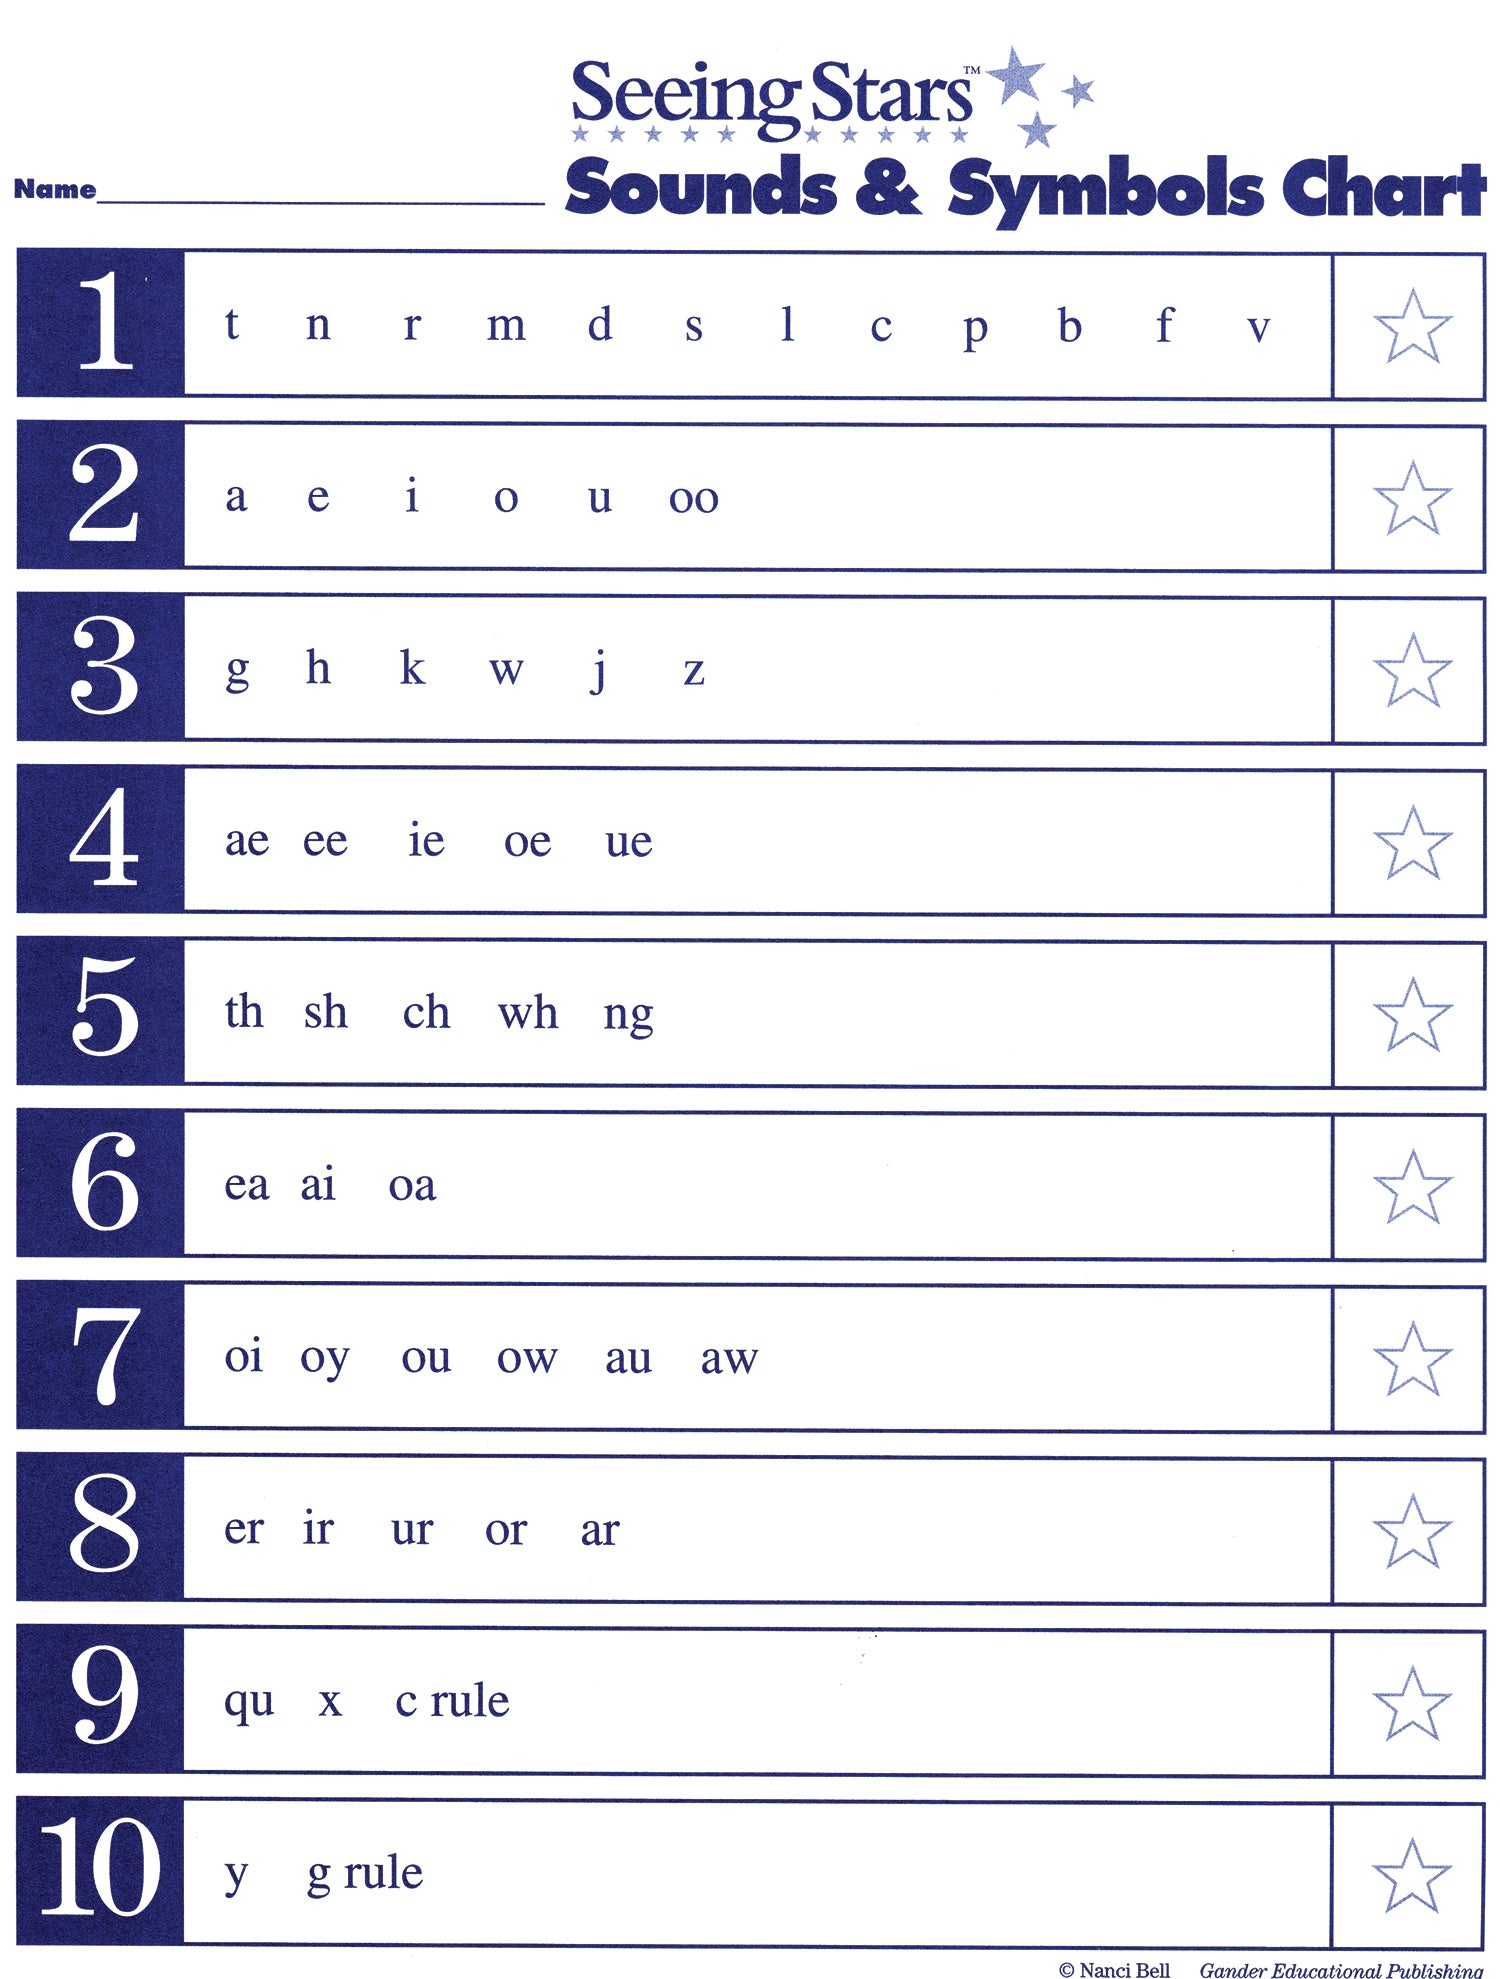 Seeing Stars® Sounds and Symbols Charts